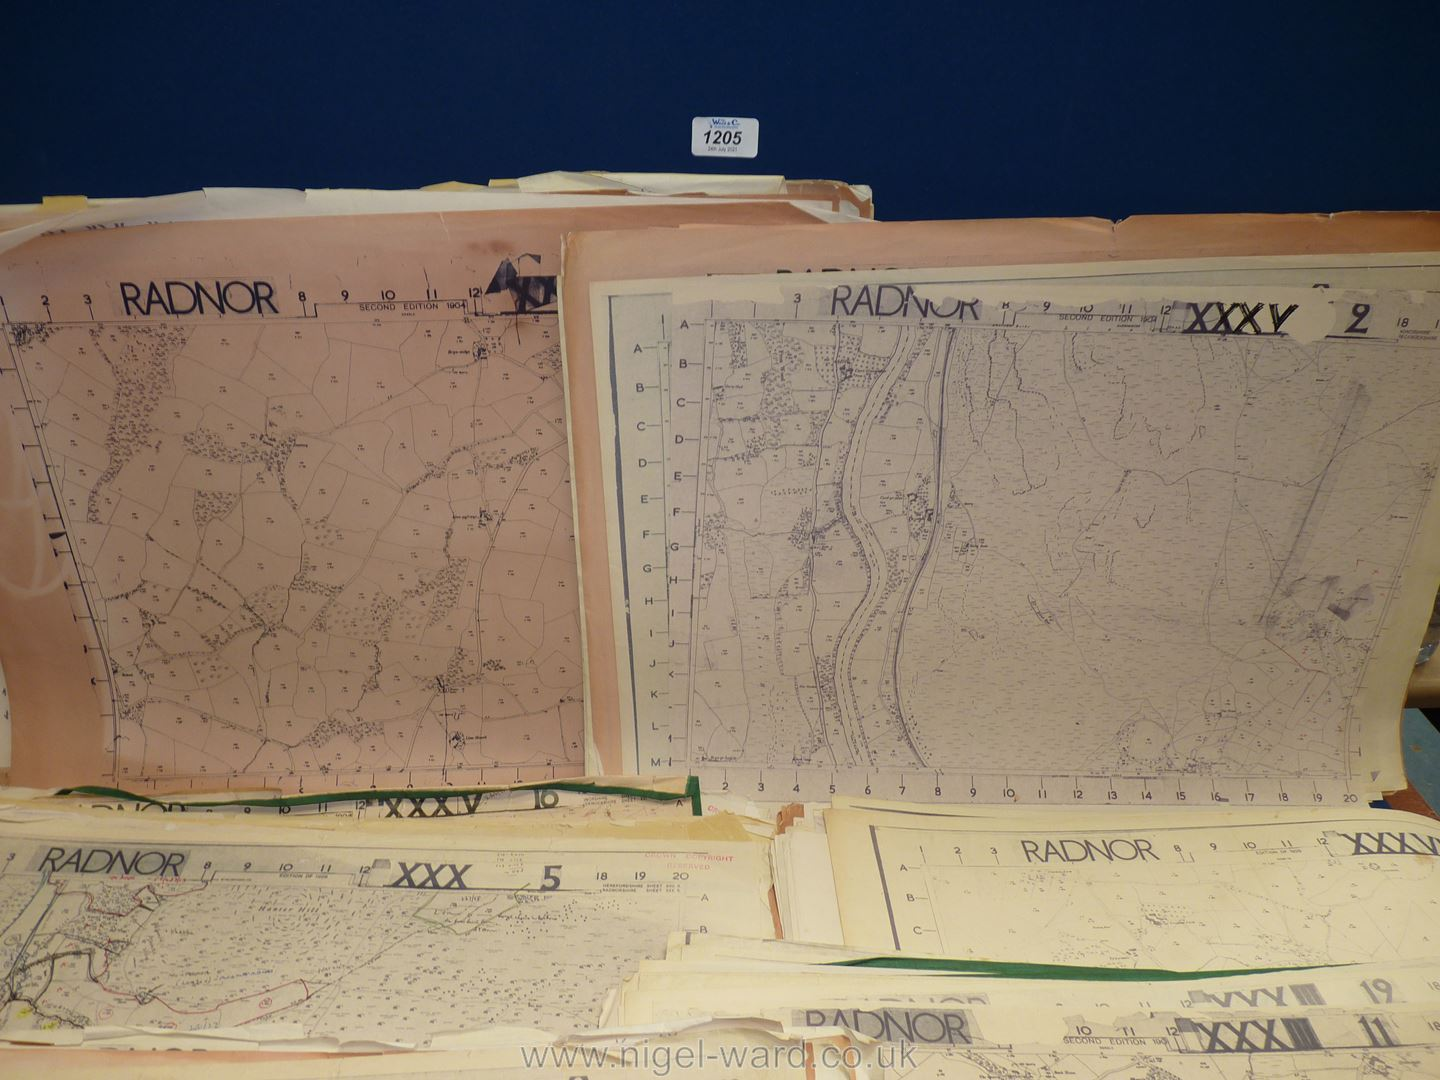 A set of large scale Ordnance Survey map sheets, circa 1904-05, - Image 2 of 2